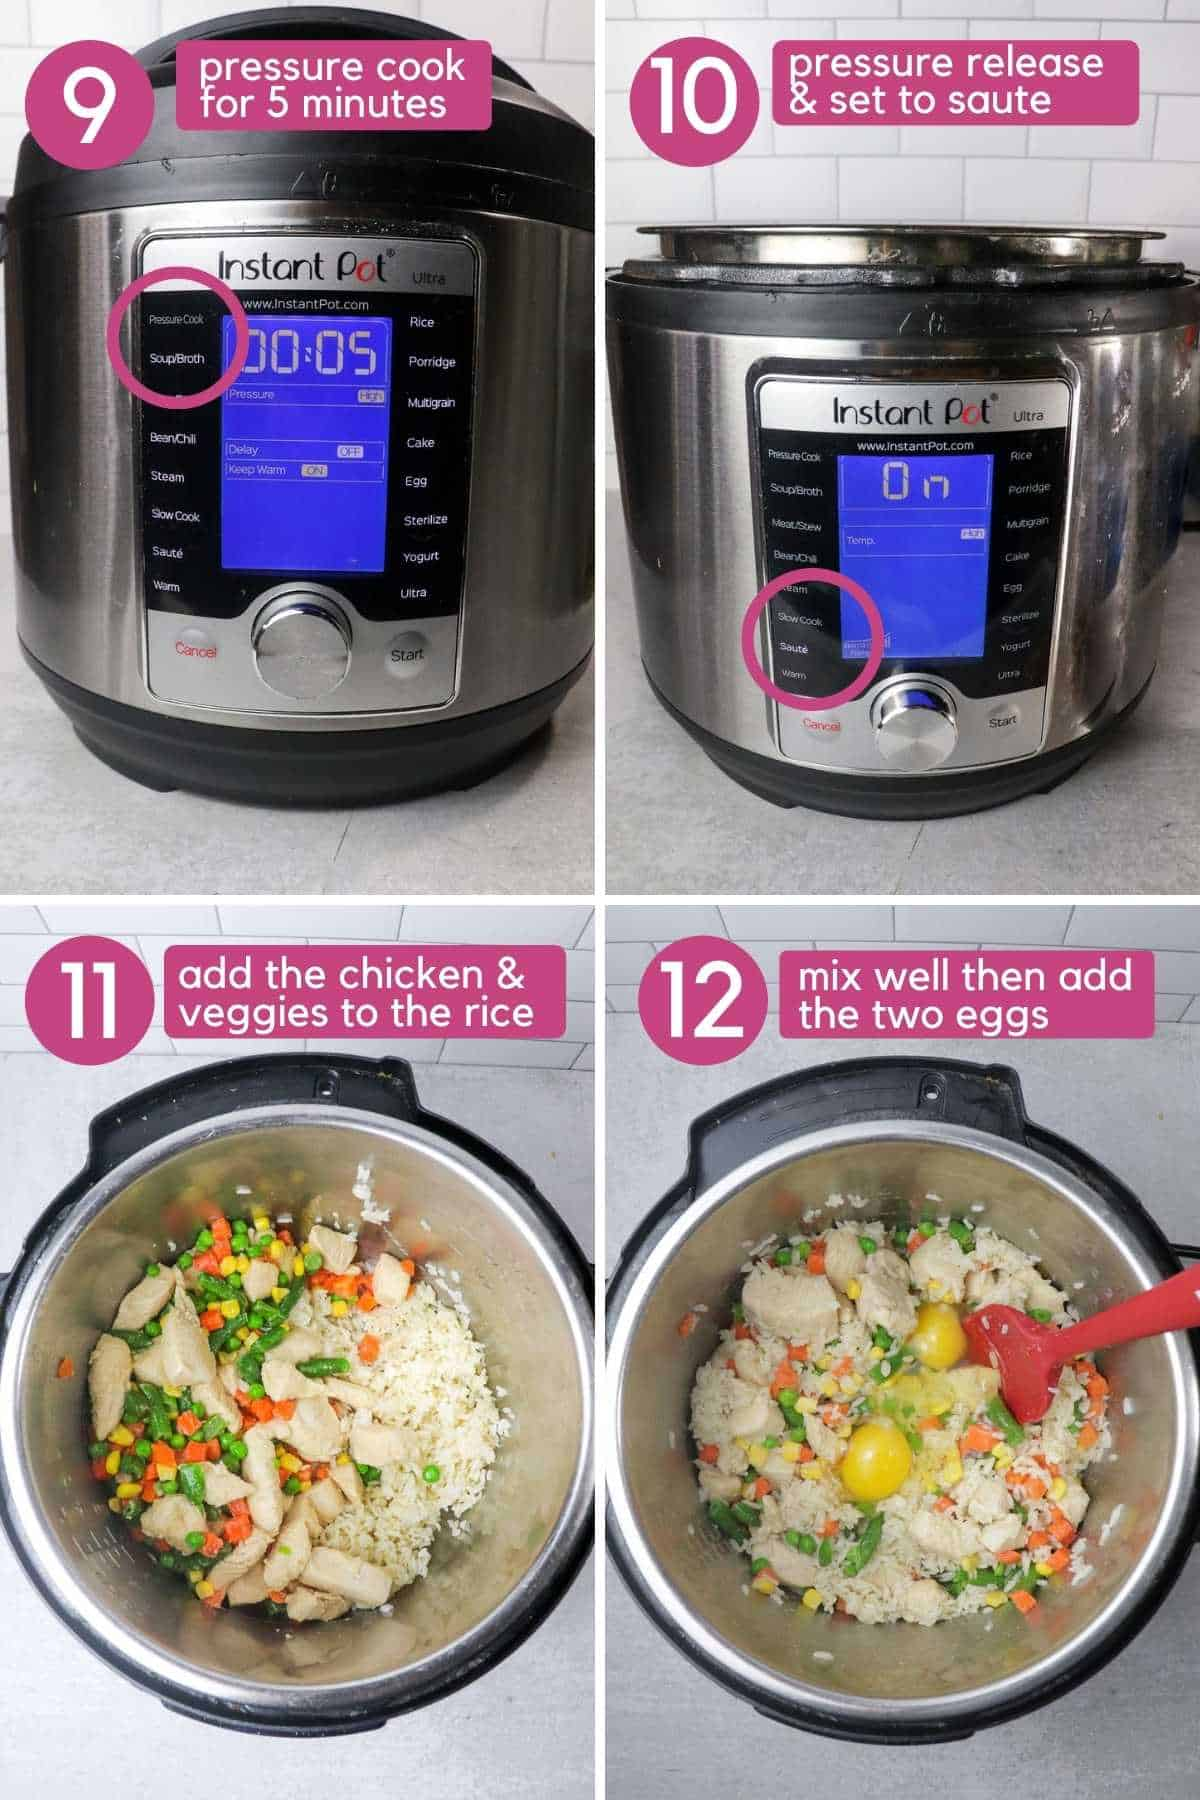 Instant Pot chicken fried rice adding eggs.